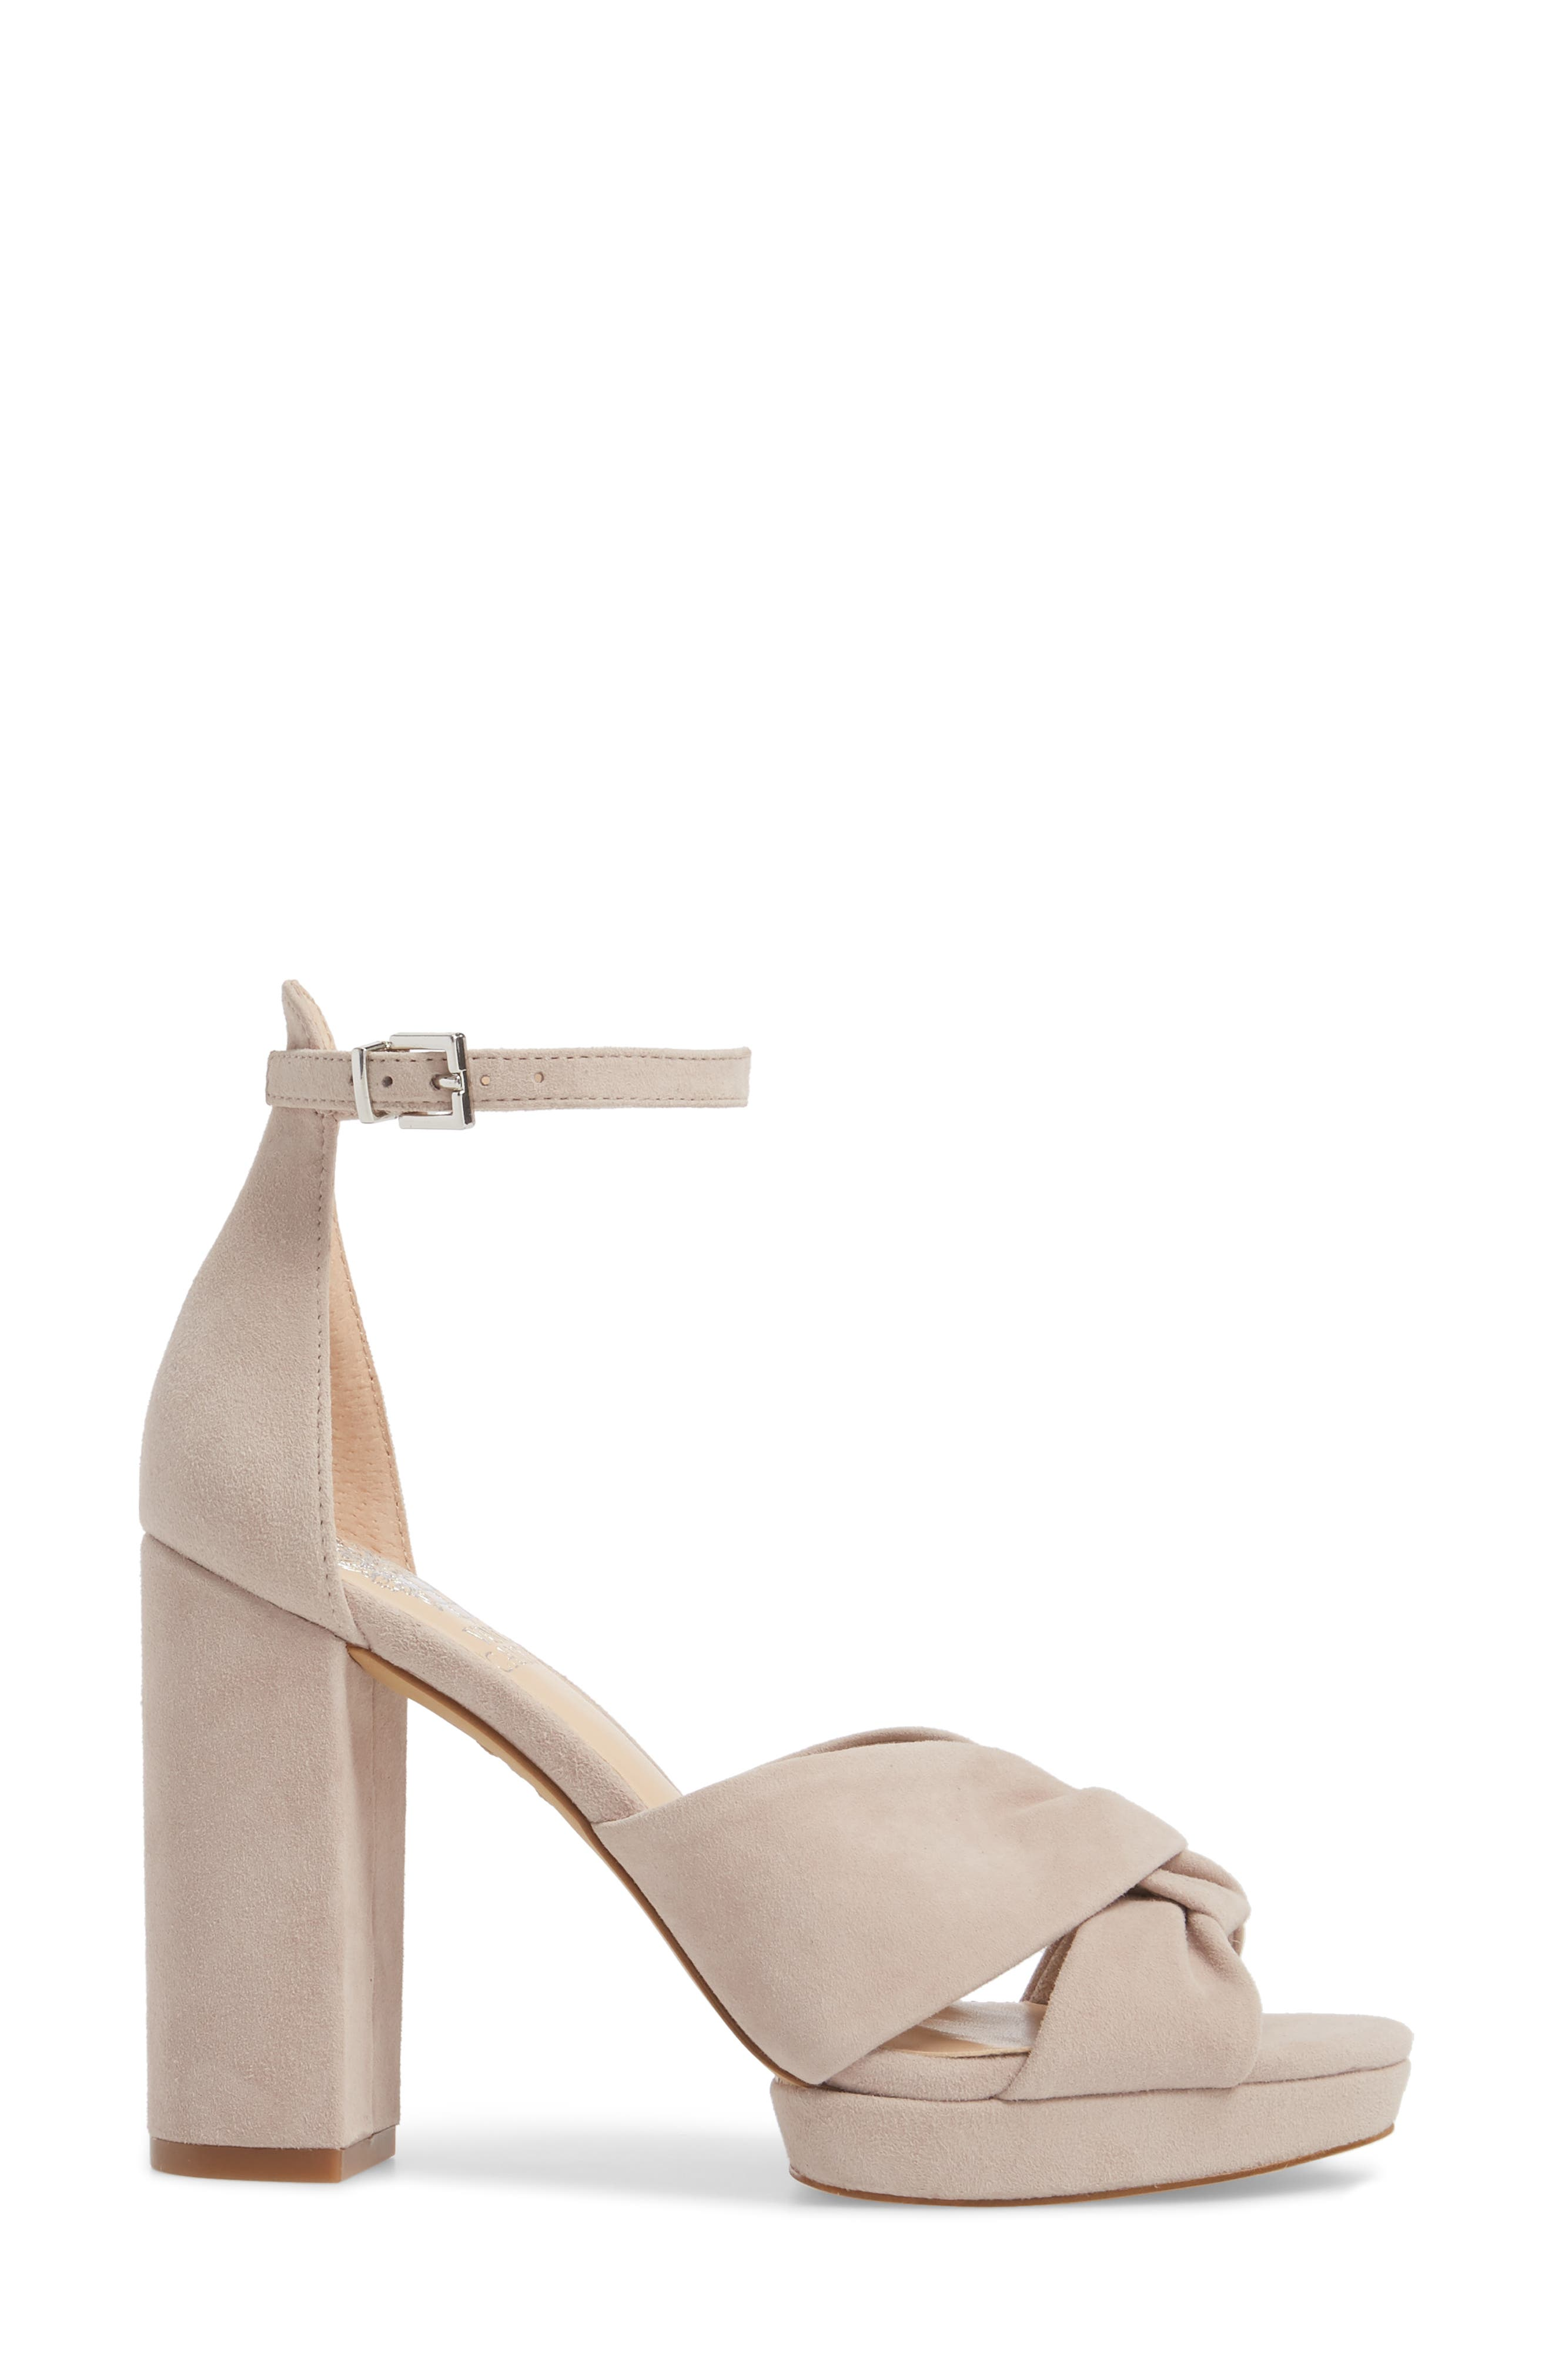 Corlesta Sandal,                             Alternate thumbnail 3, color,                             TIPSY TAUPE SUEDE